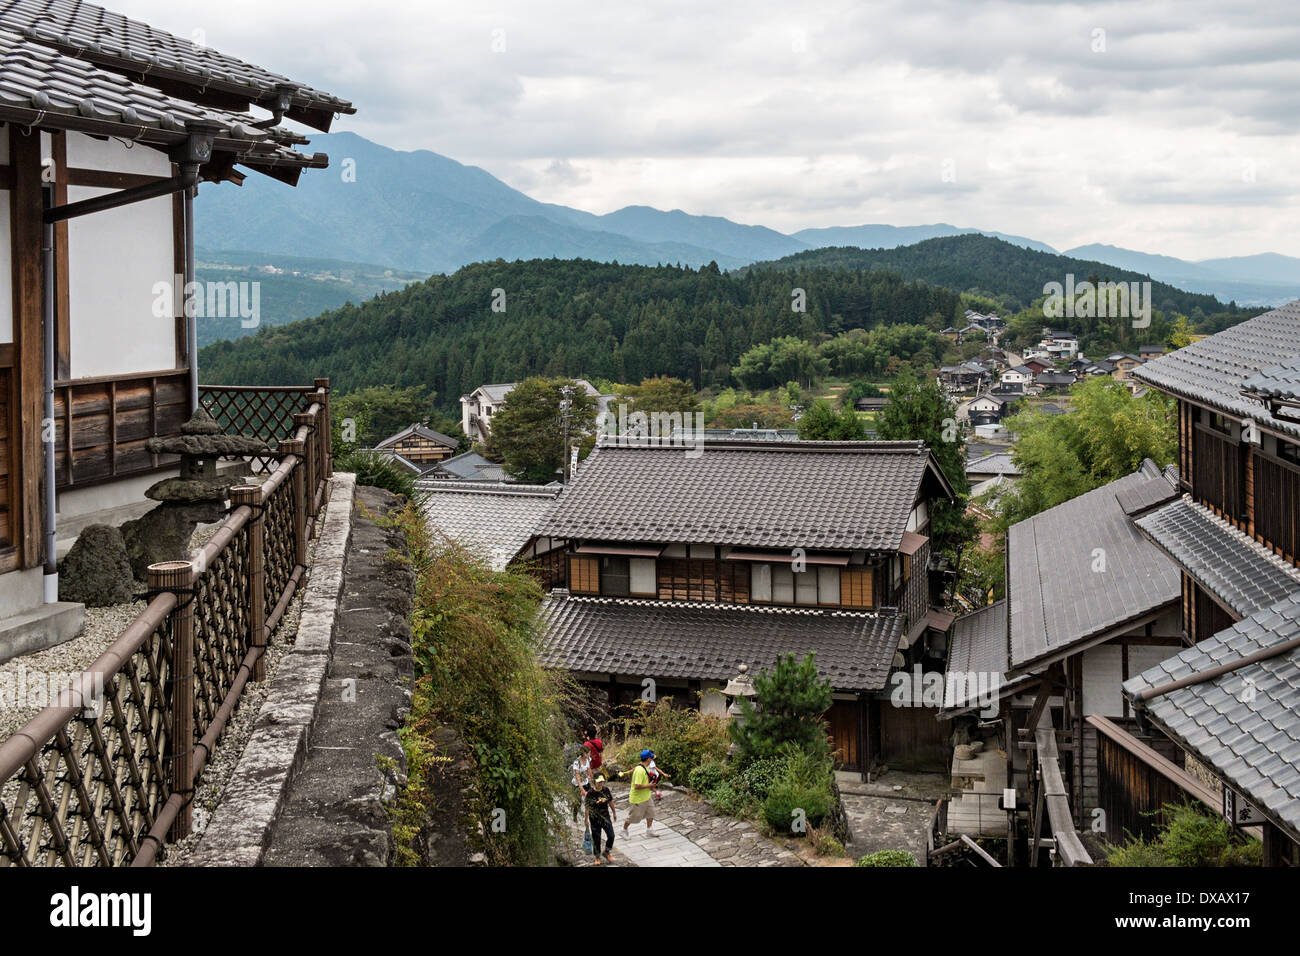 magome japan stockfotos magome japan bilder alamy. Black Bedroom Furniture Sets. Home Design Ideas